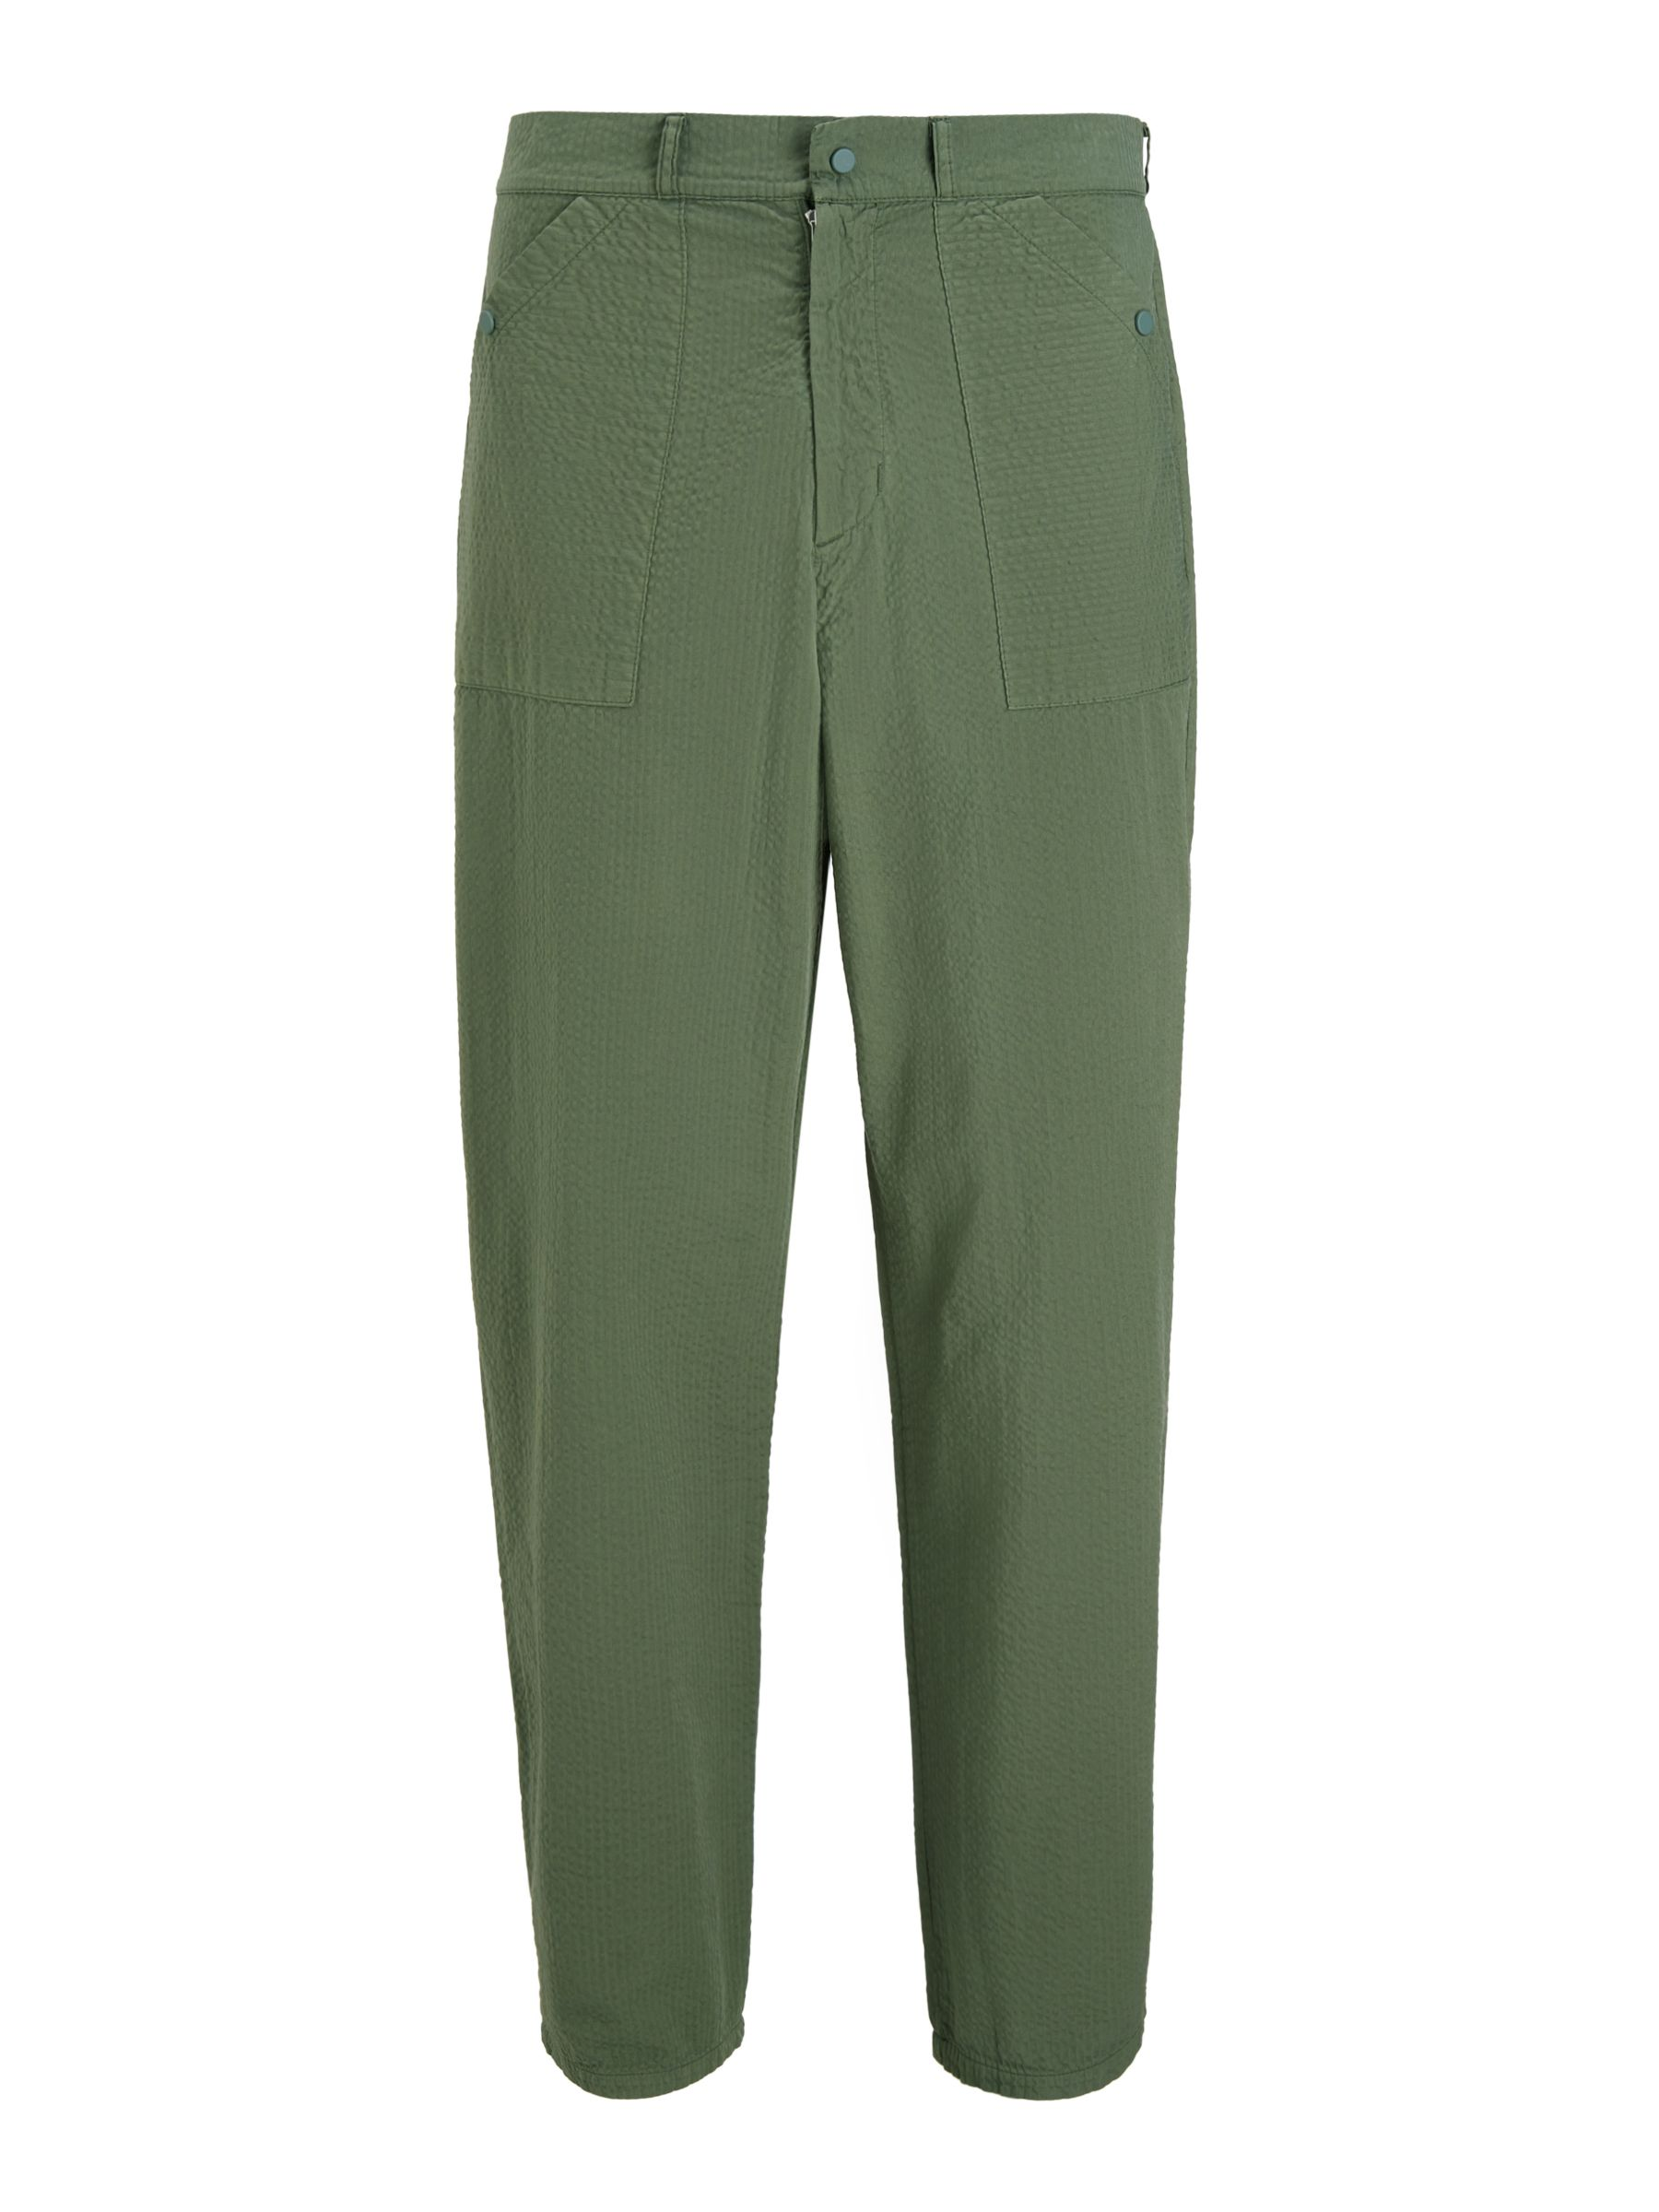 Buy Les Basics Patch Trousers, Sage, S Online at johnlewis.com